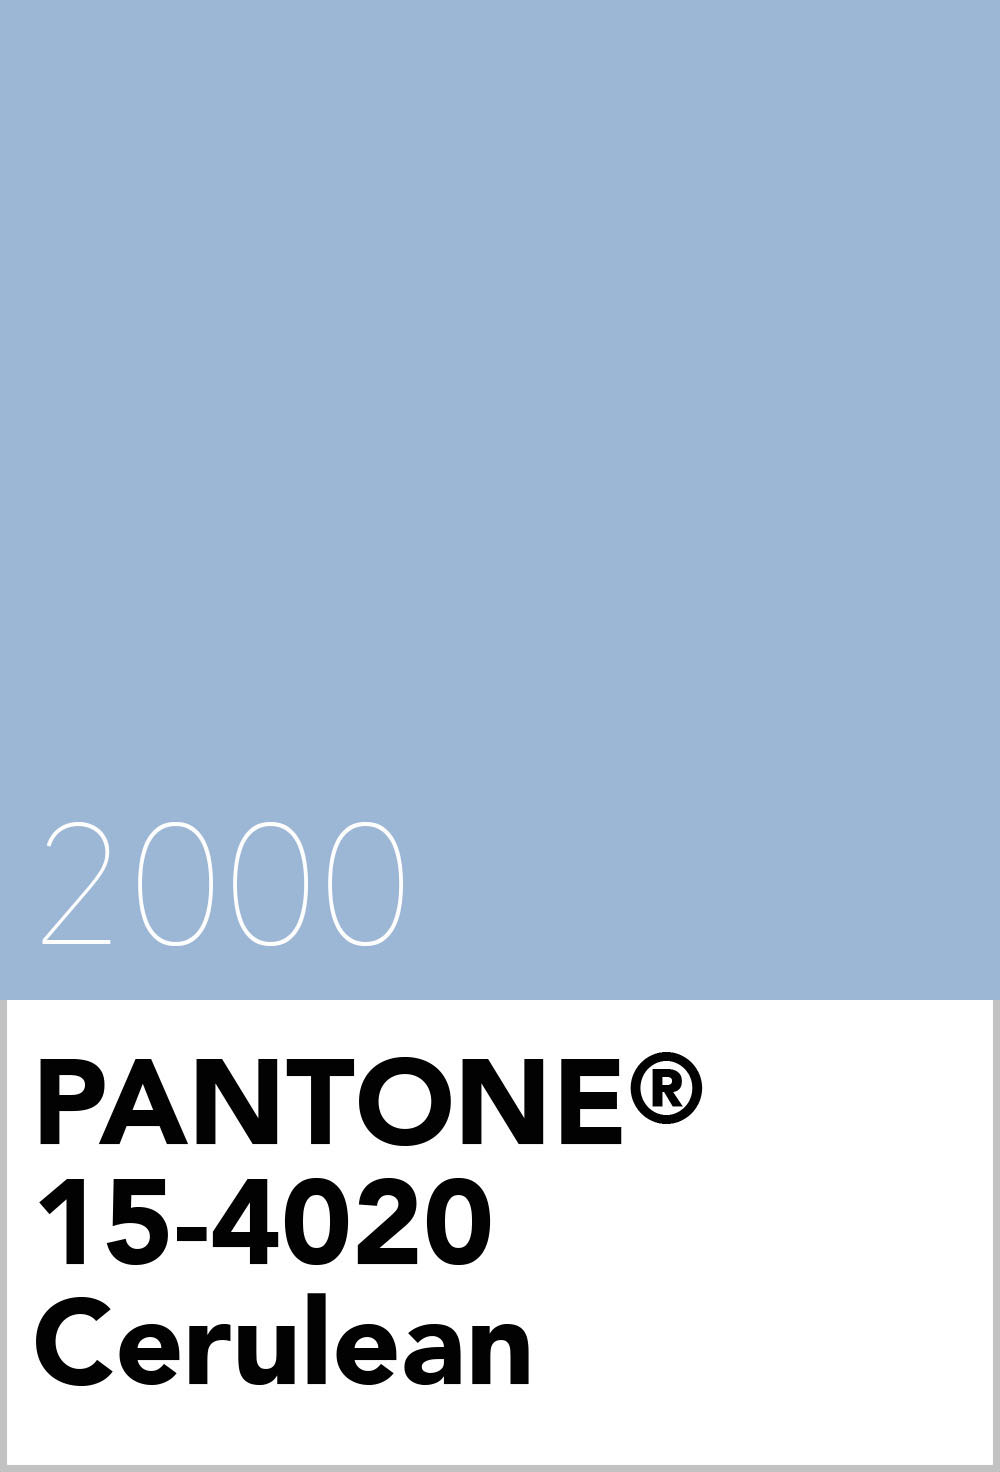 Pantone Colour Of The Year 2000